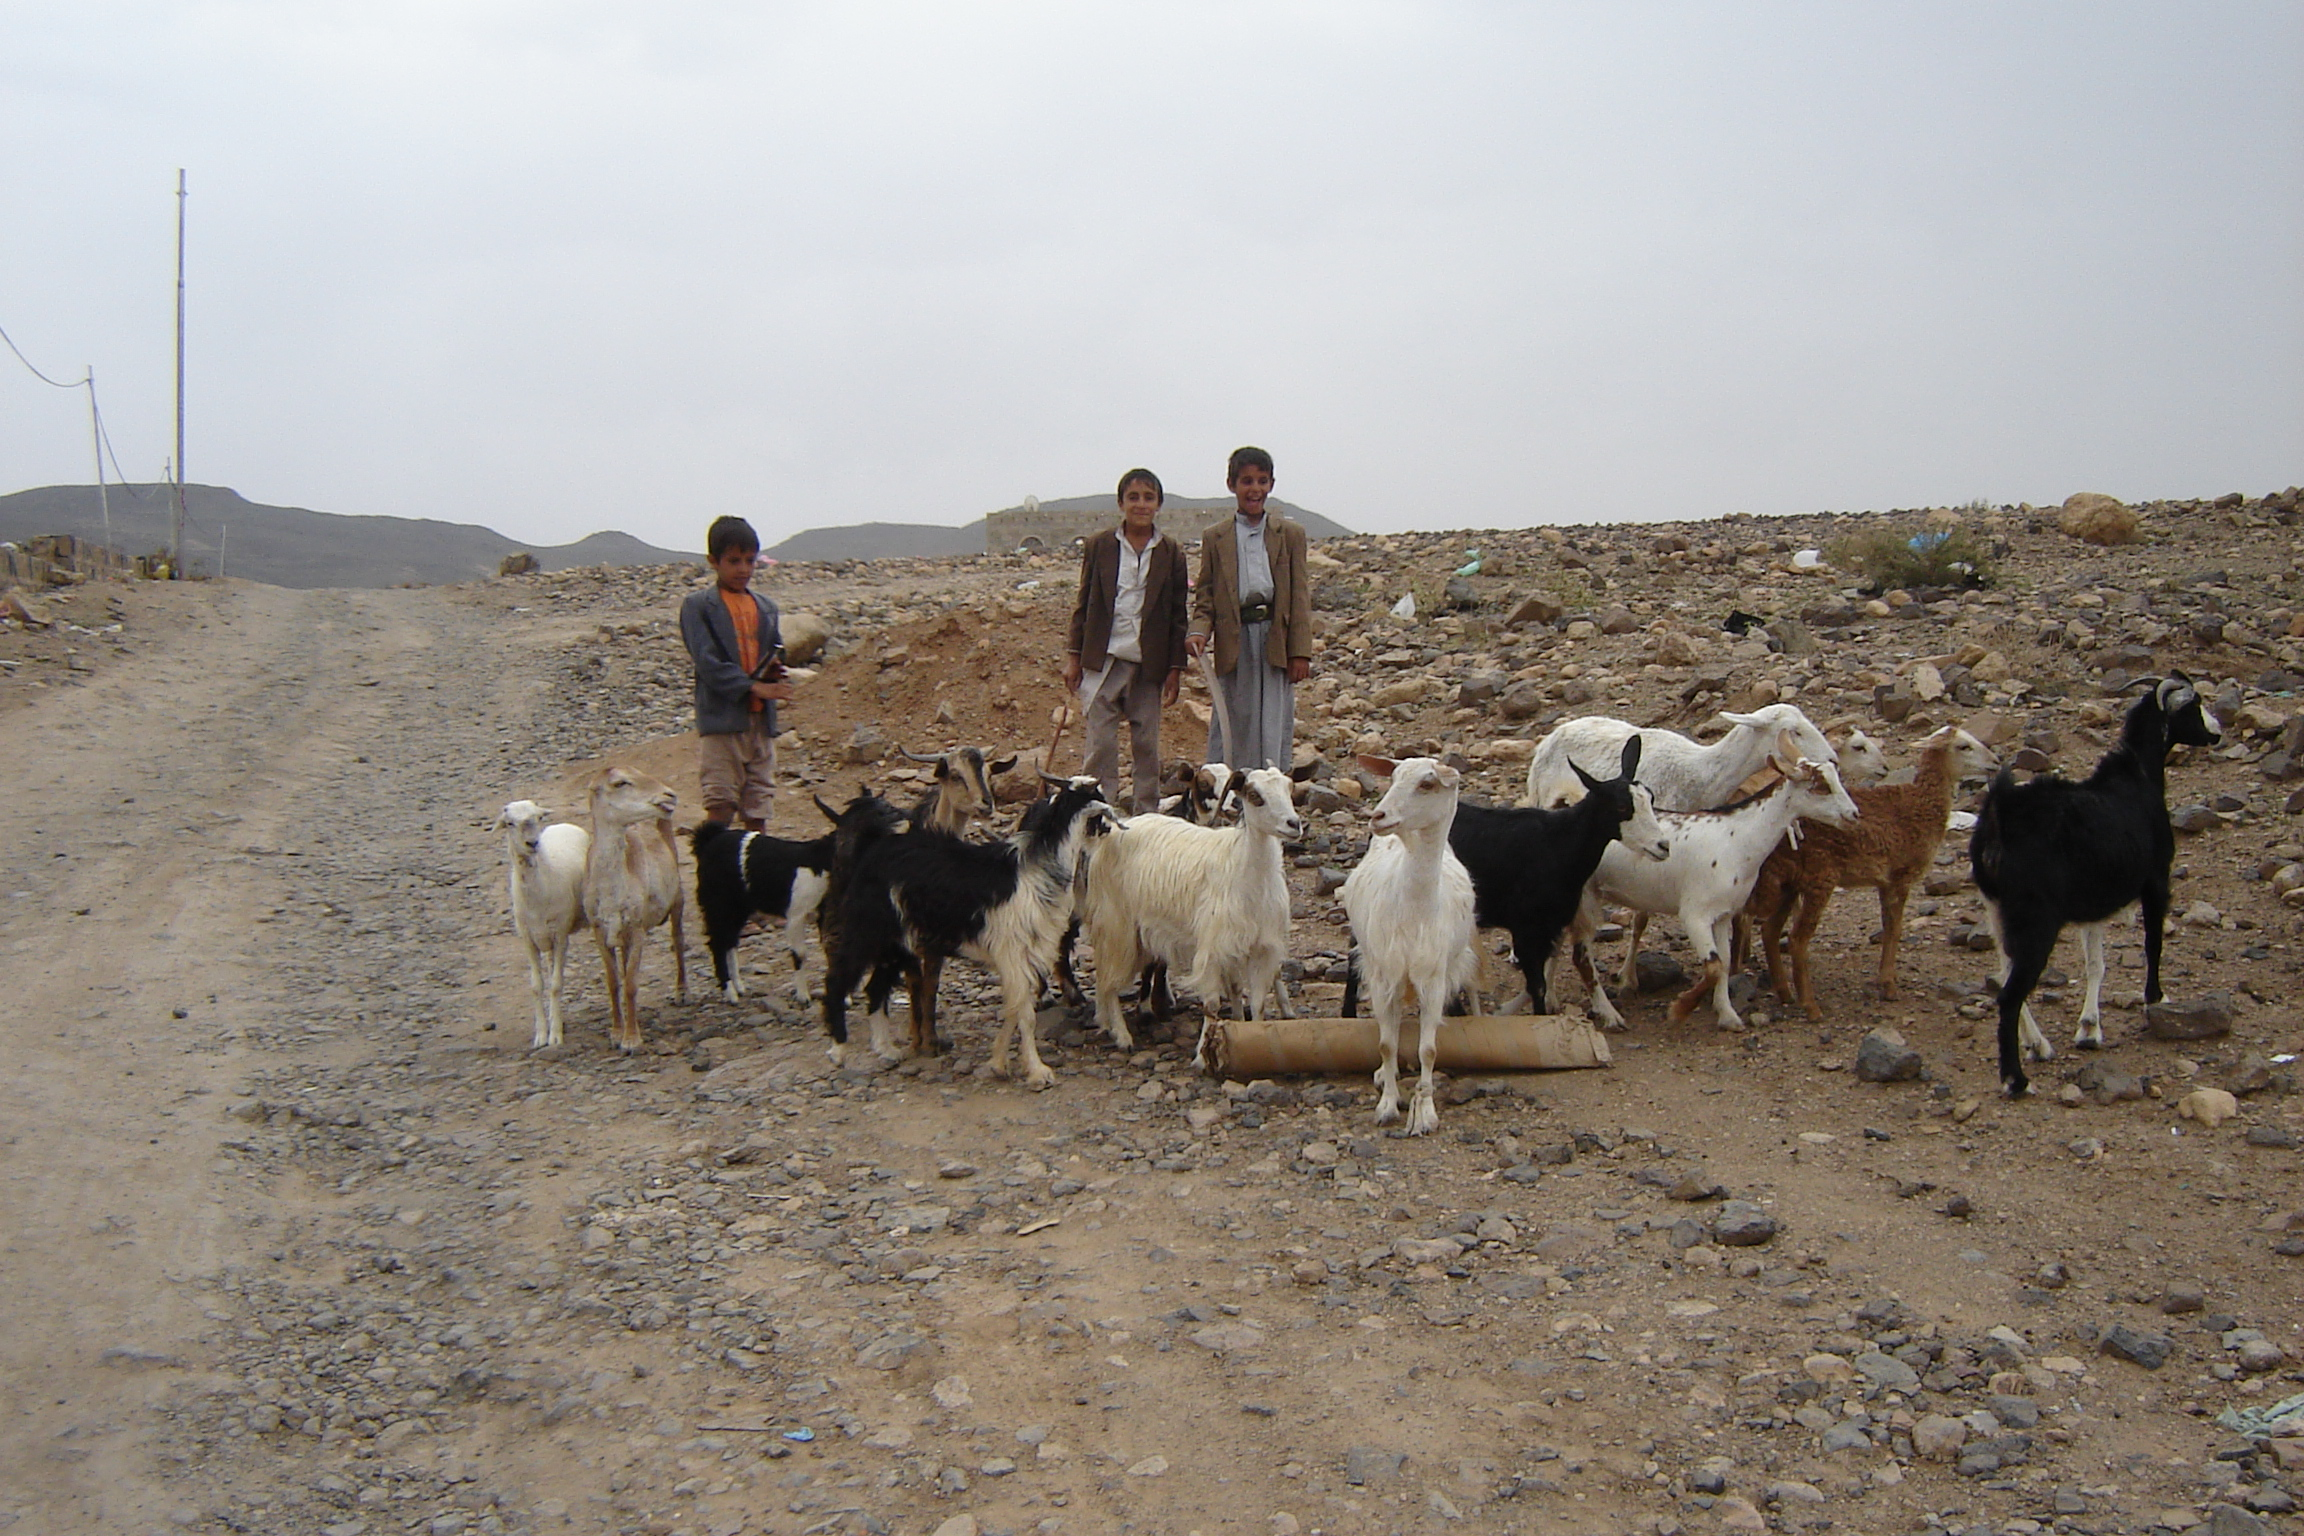 Children driving with their goats through a parched area in search of pasture